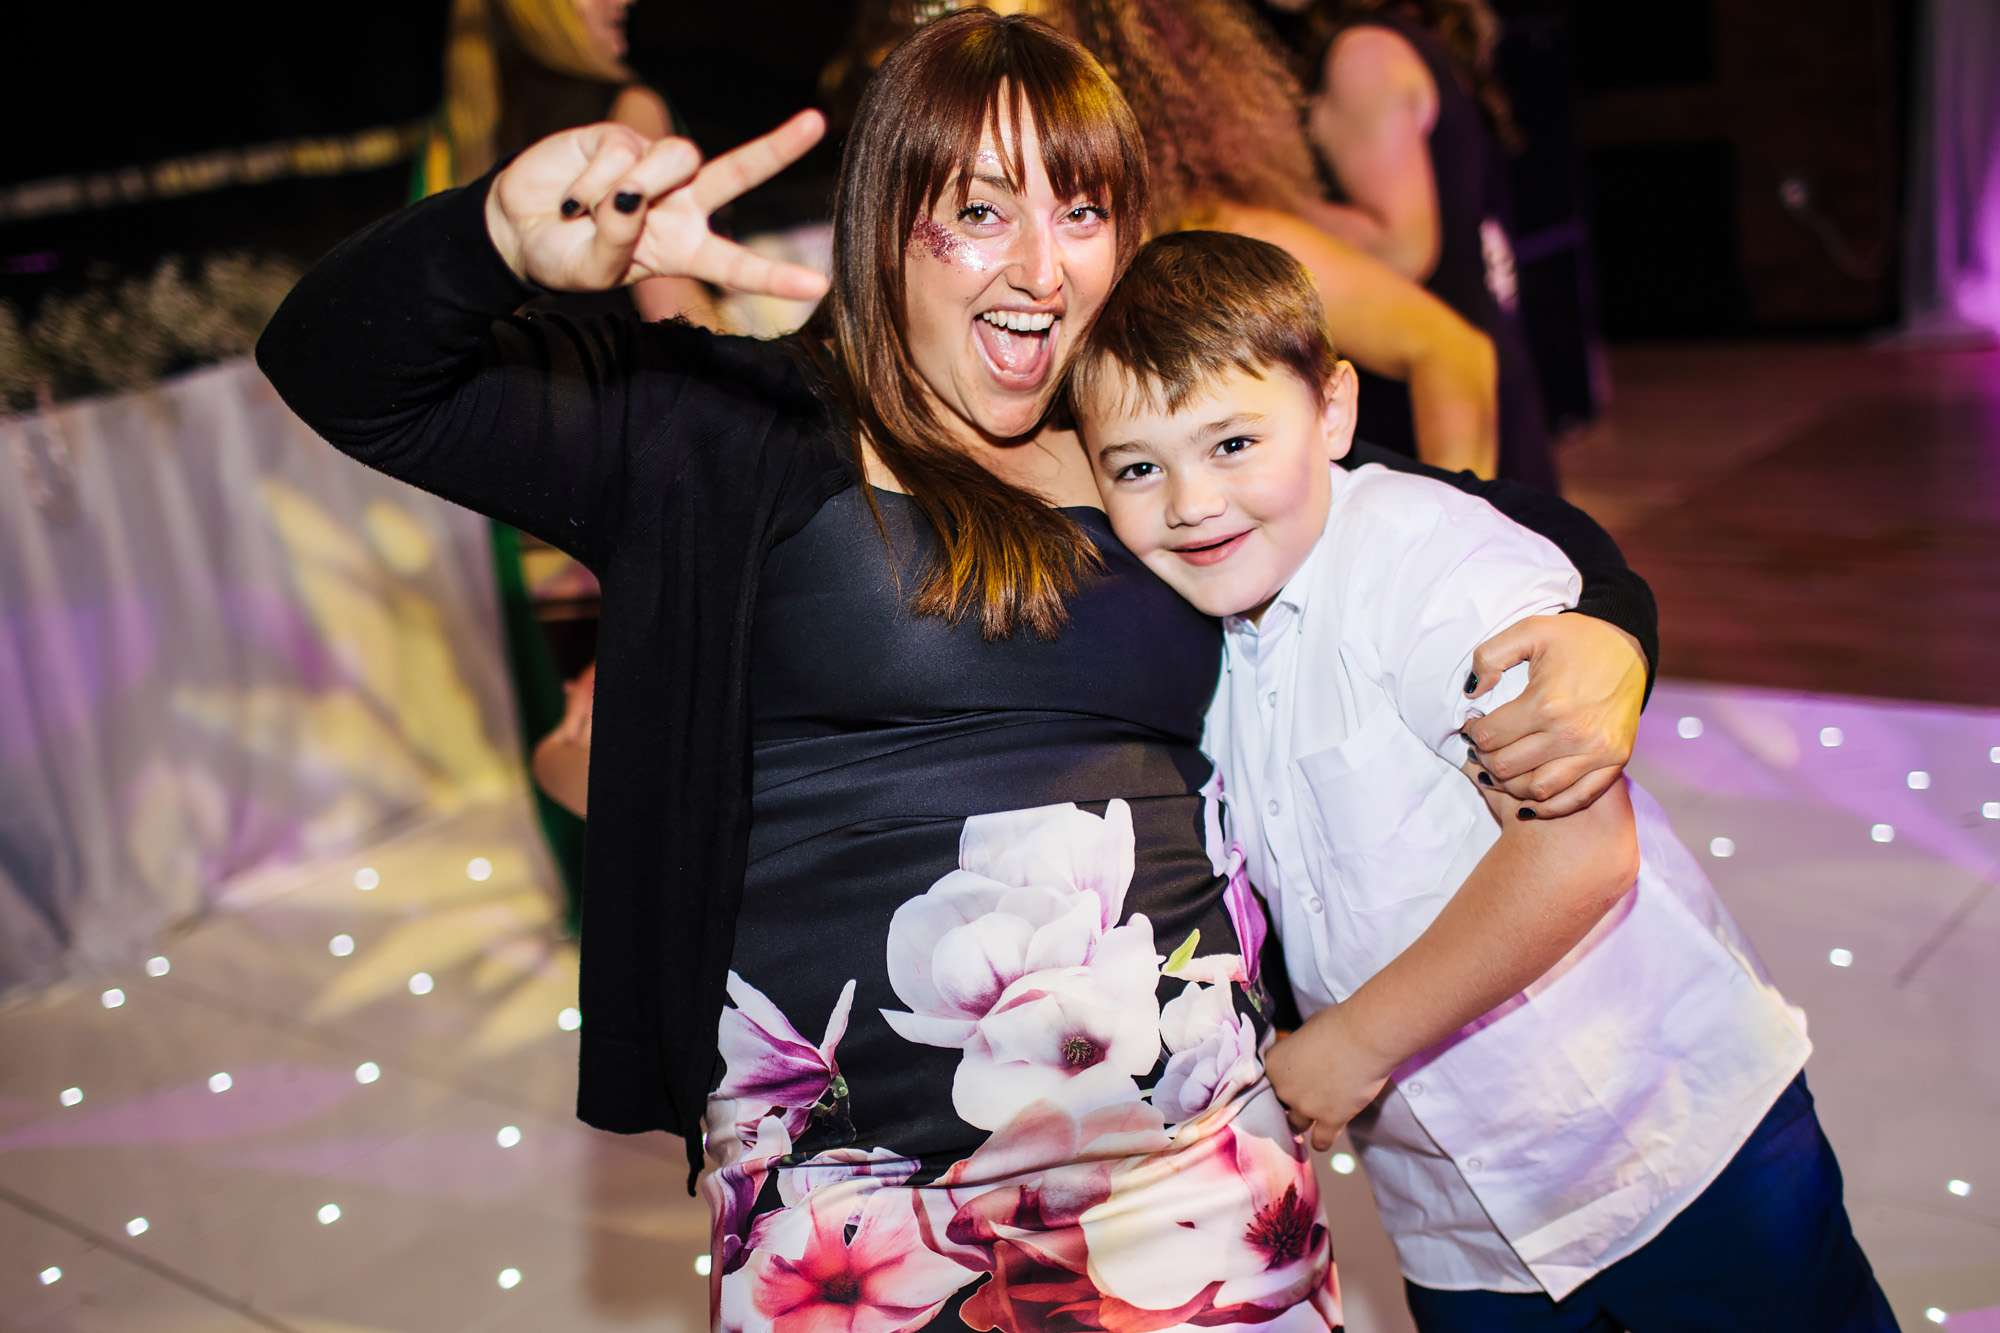 Mum and boy at a wedding on the dance floor